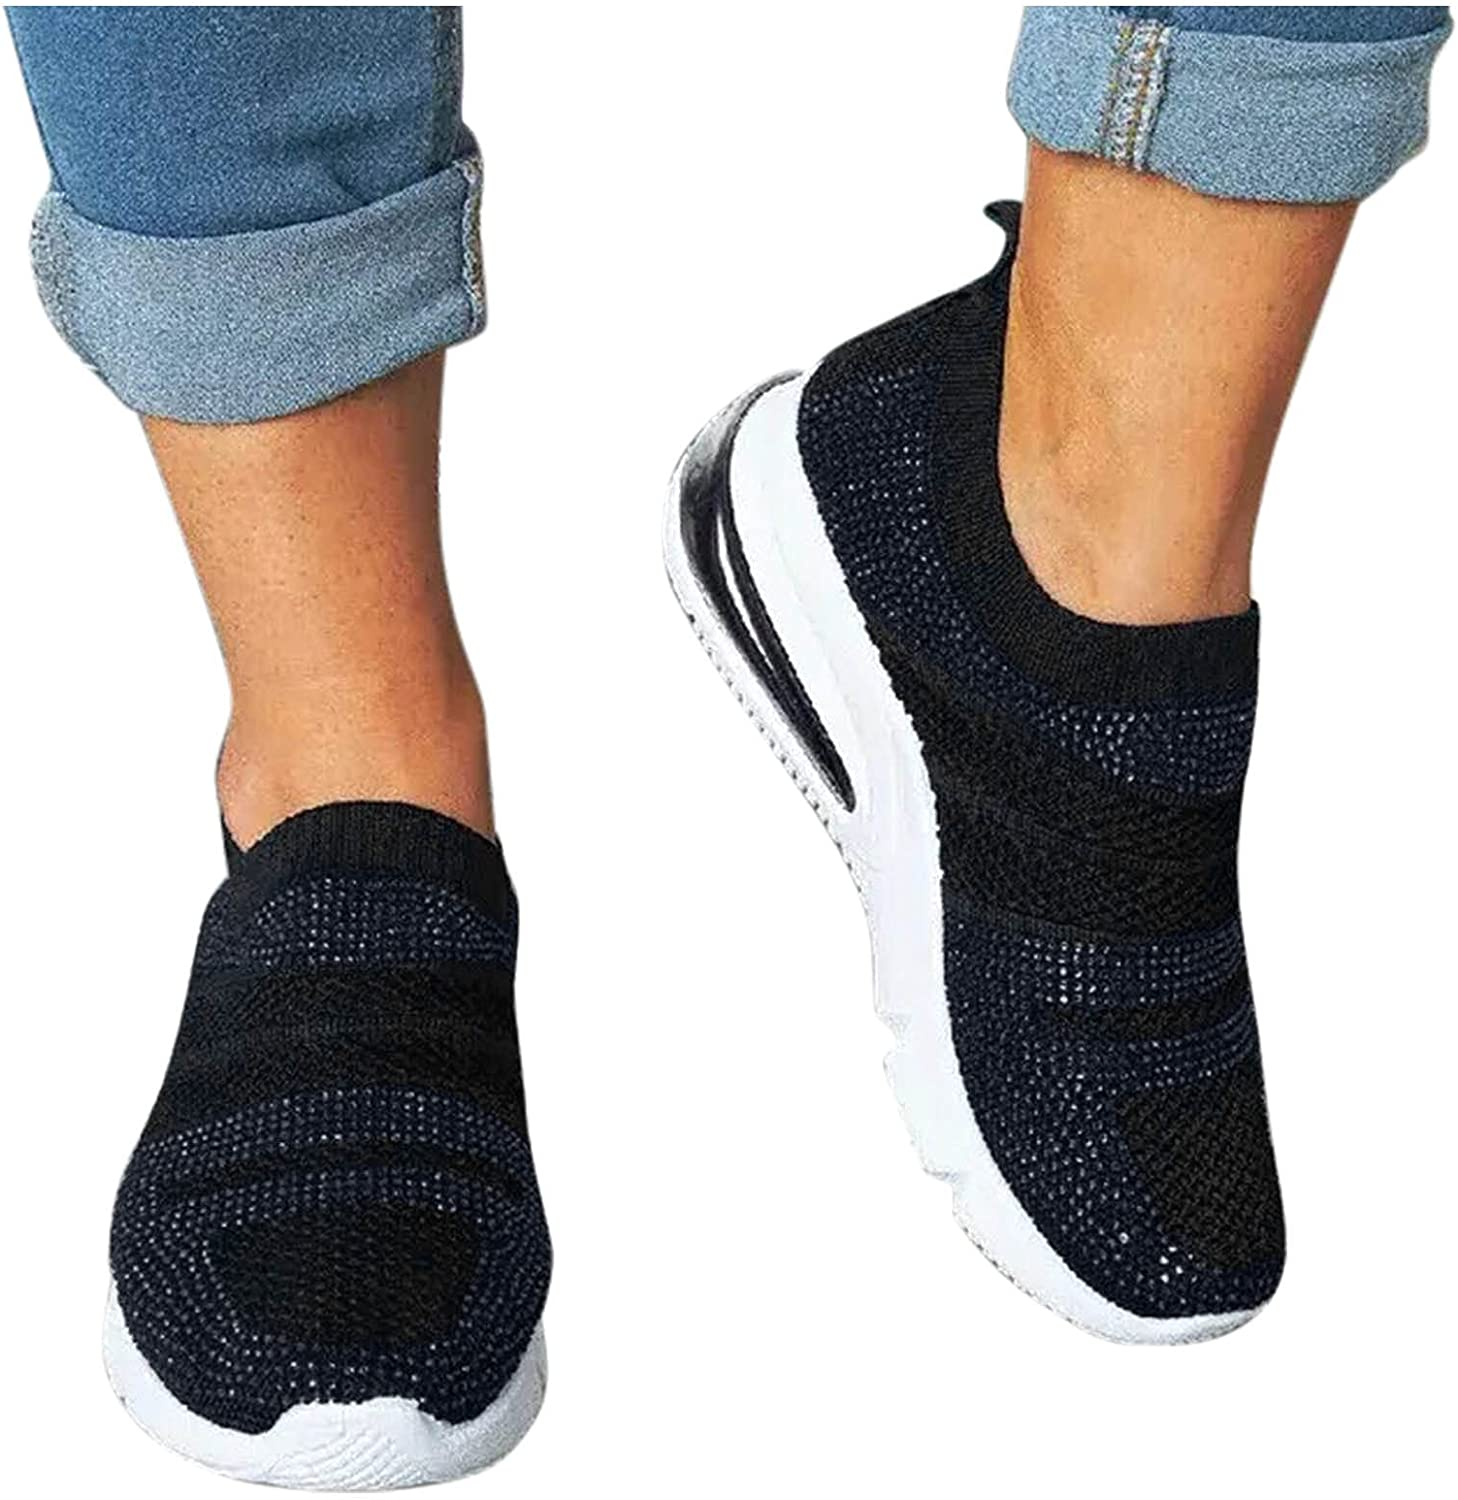 Fashion Sneakers for Women,Women's Terrific Slip-on Walking Shoes Casual Flat Shoes Canvas Loafers Running Tennis Shoes